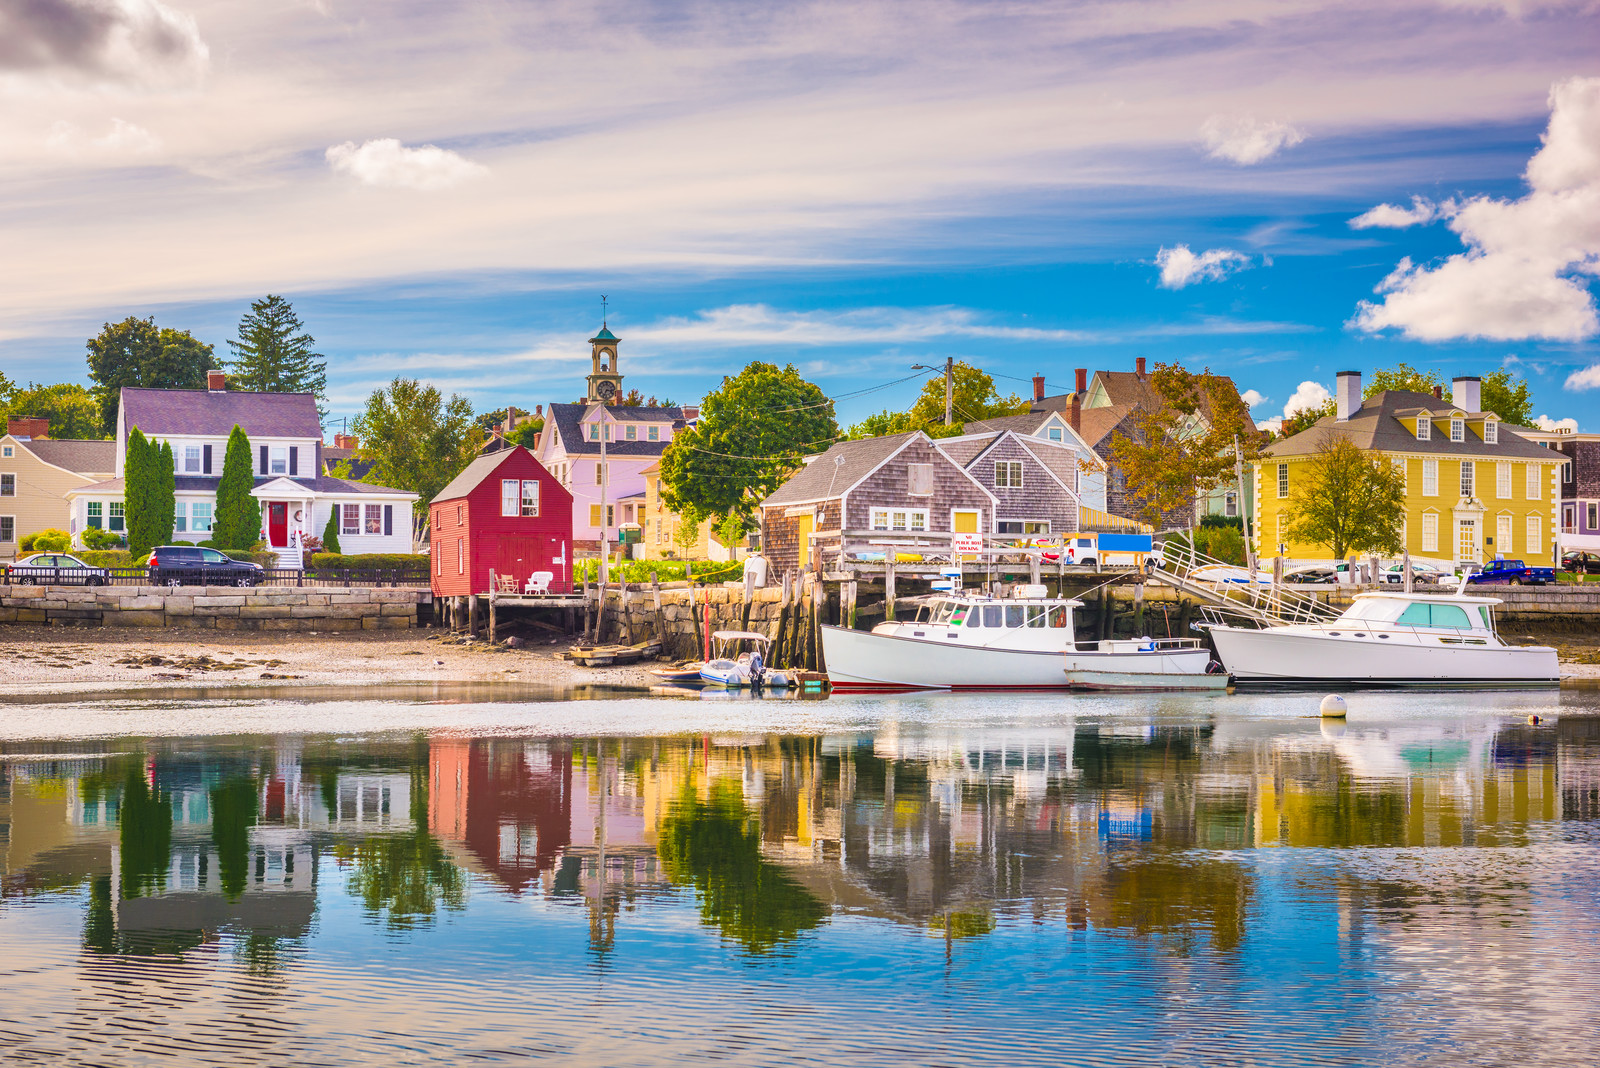 Colorful houses lining the Piscataqua River in Portsmouth, New Hampshire,  With two white boats docked on the shore